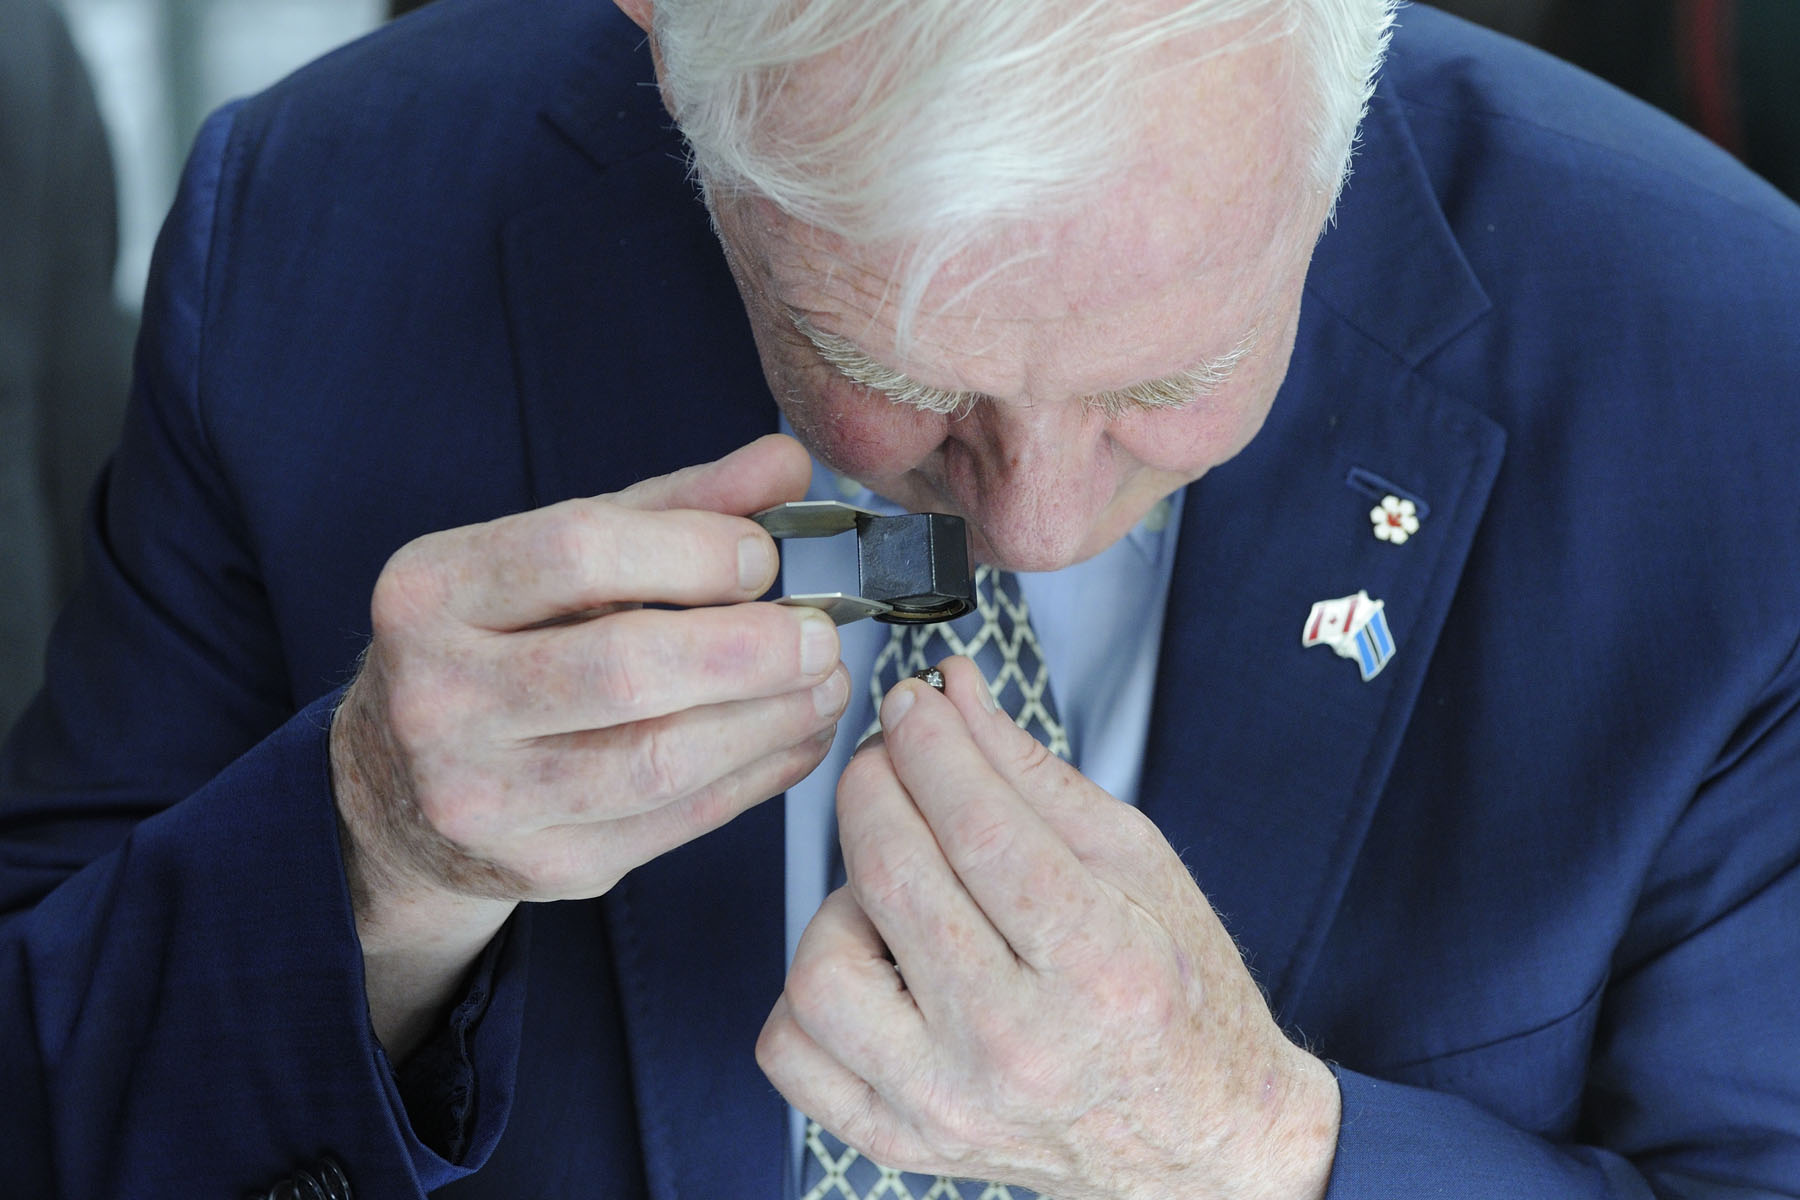 His Excellency inspected a diamond with a jeweler's loupe.